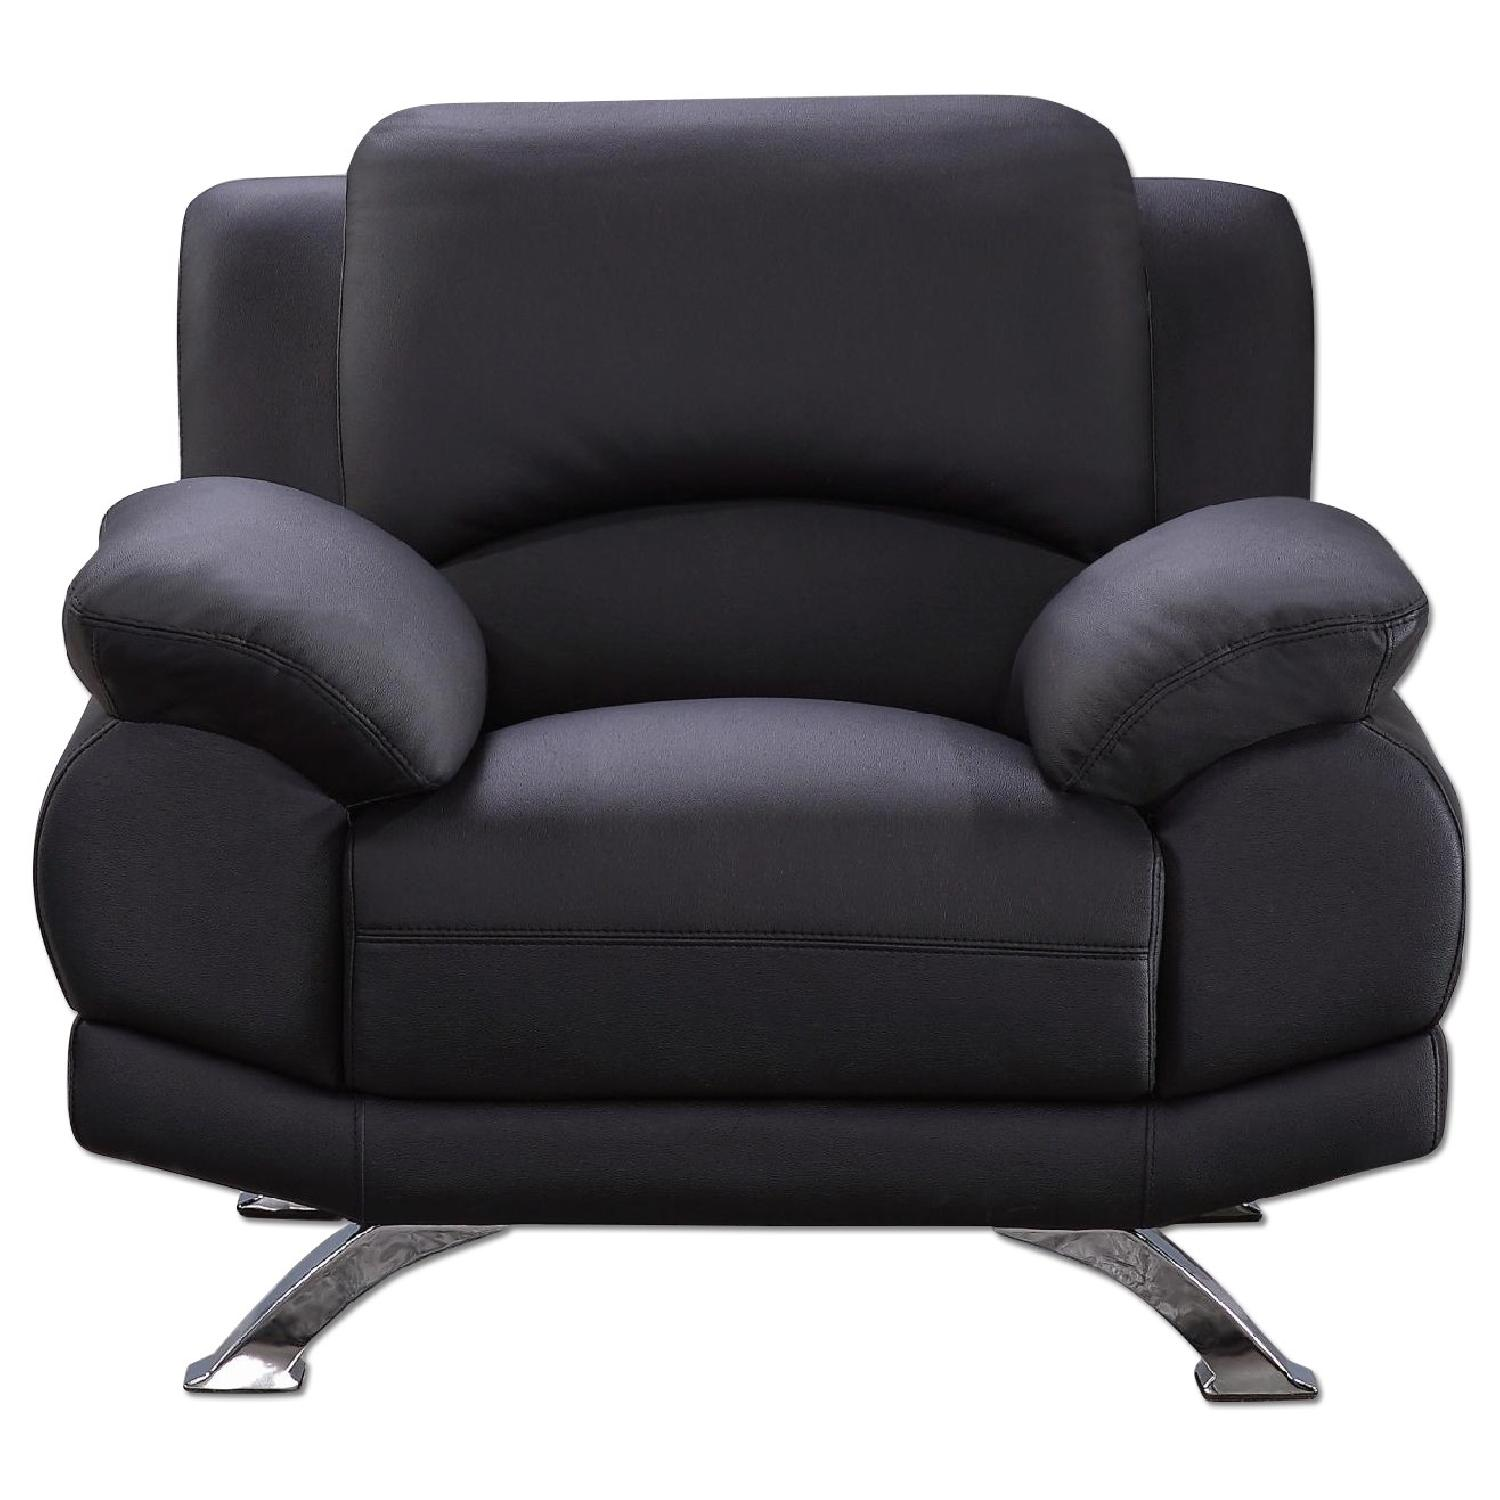 Casual Style Arm Chair in Black Top Grain Leather w/ Gently Sloped Armrests & Chrome Legs